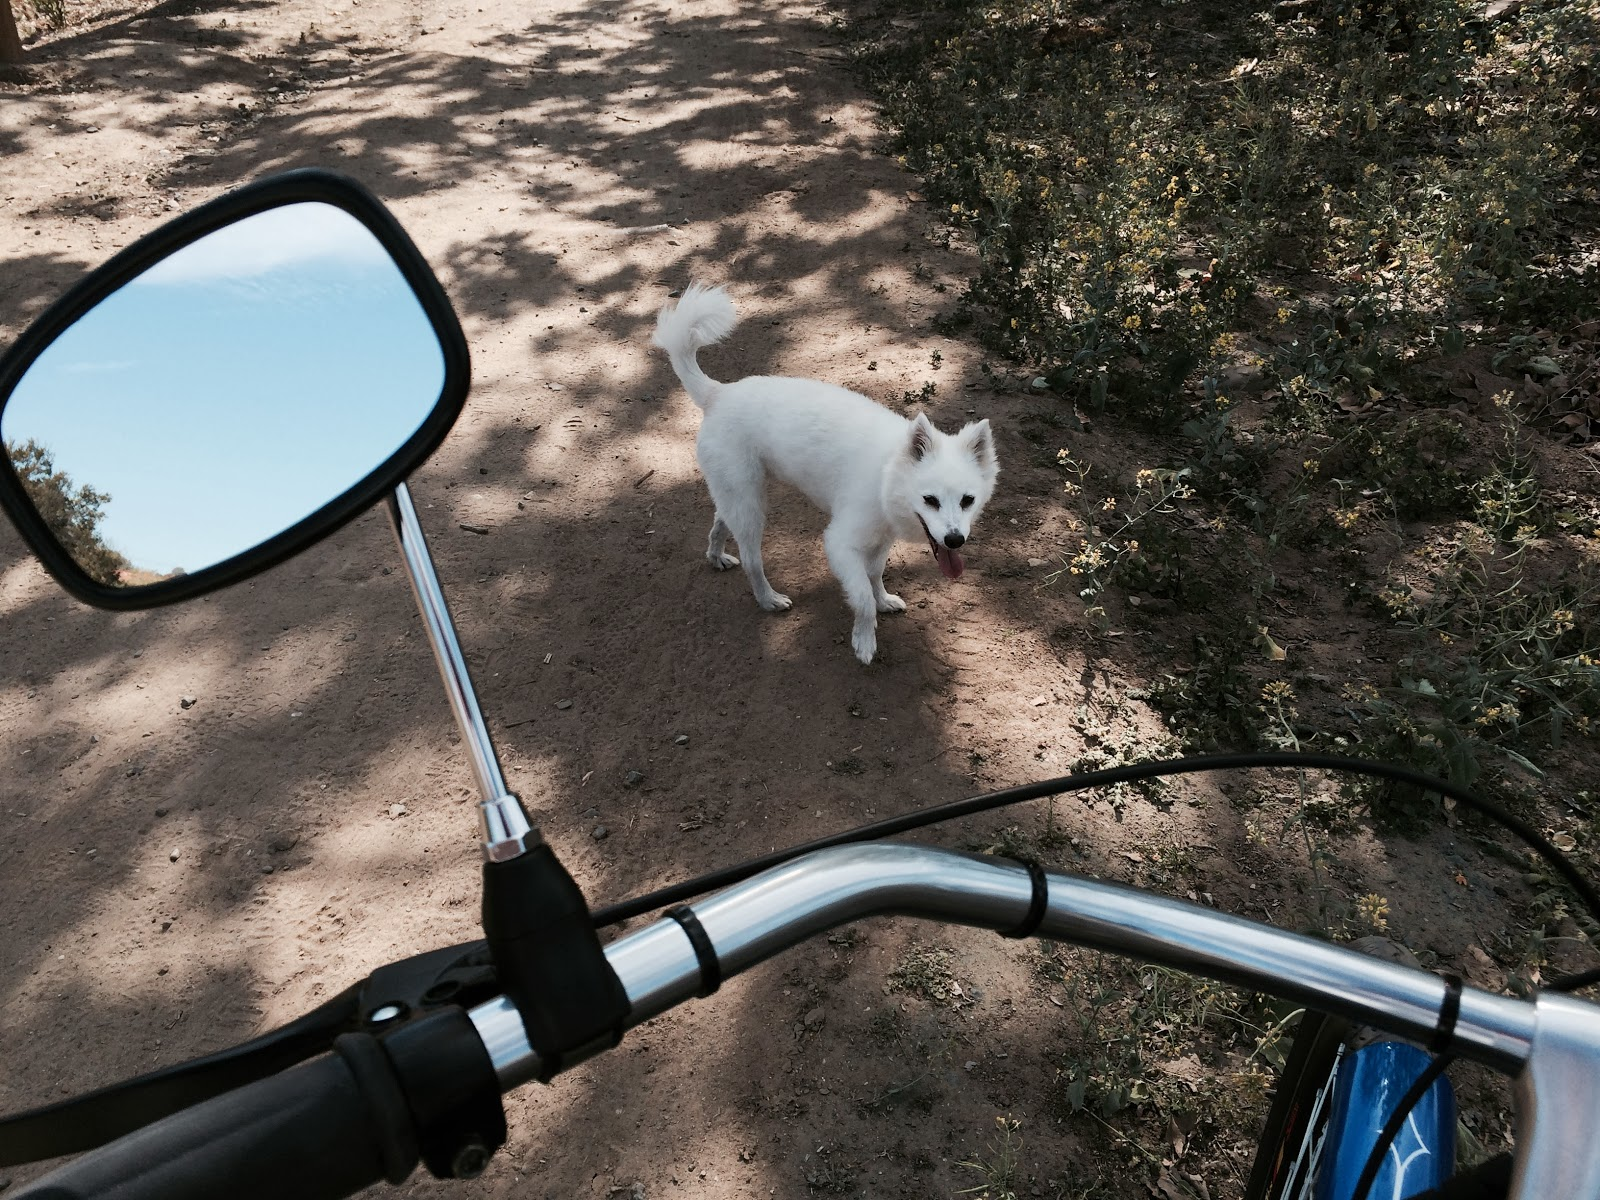 tricycle Mirror, White Dog, Northwest Open Space San Juan Capistrano